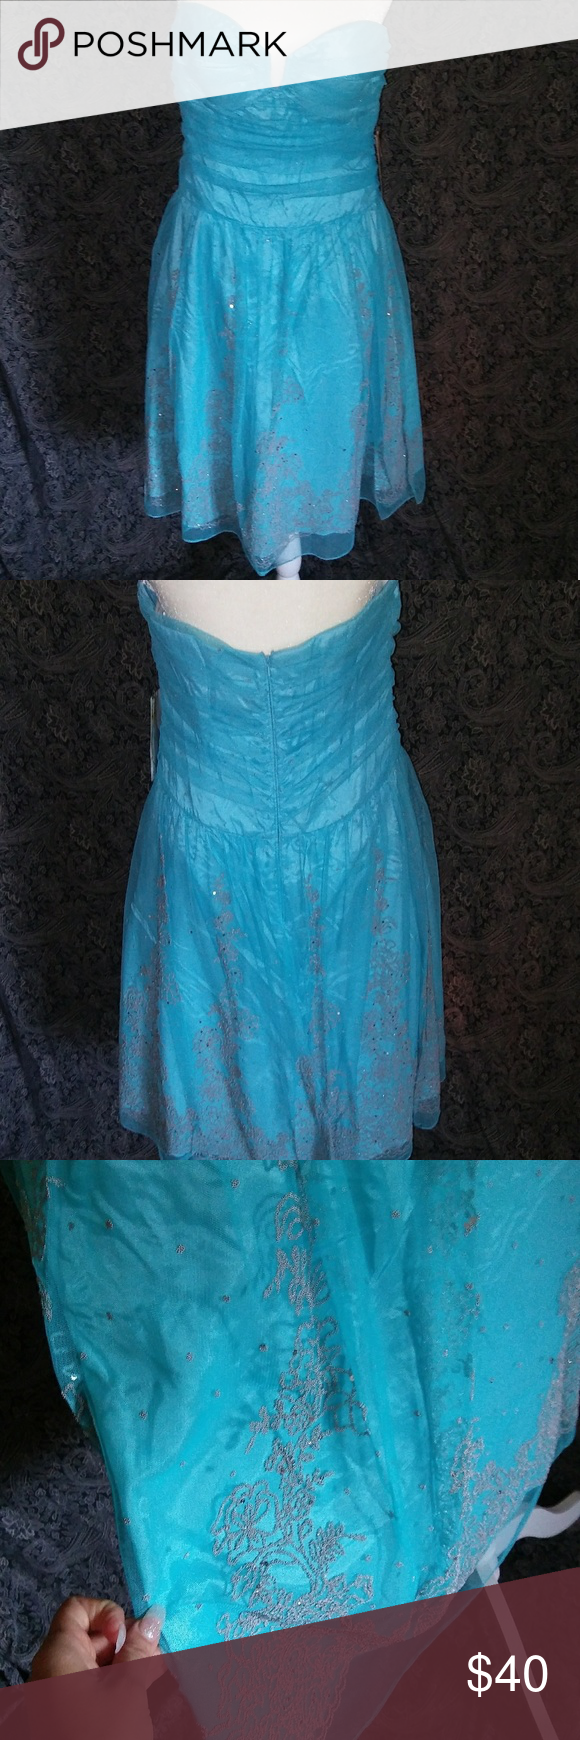 Niki livas turquoise homecoming or prom dress with silver